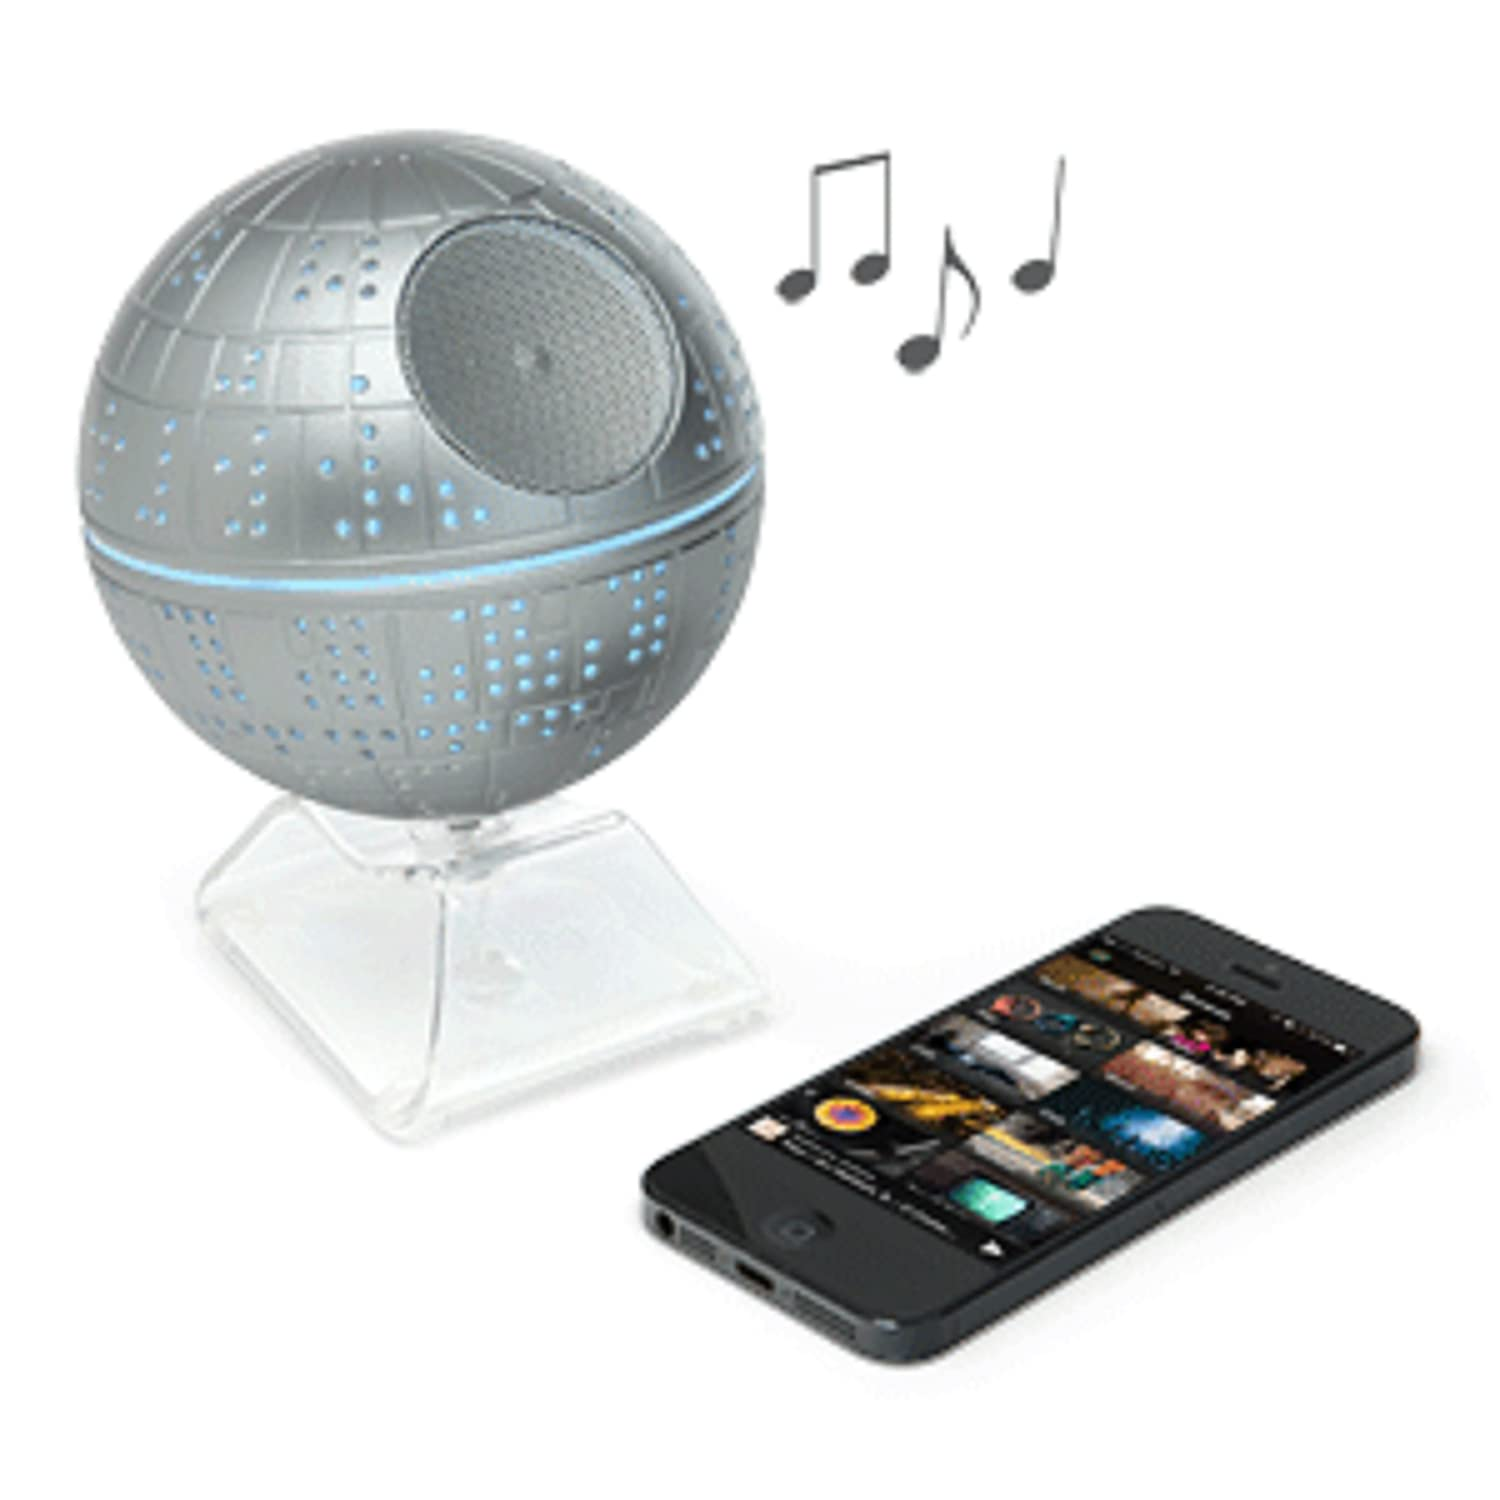 Star Wars Death Star Bluetooth Speaker lepin 05035 star wars death star limited edition model building kit millenniums blocks puzzle compatible legoed 75159